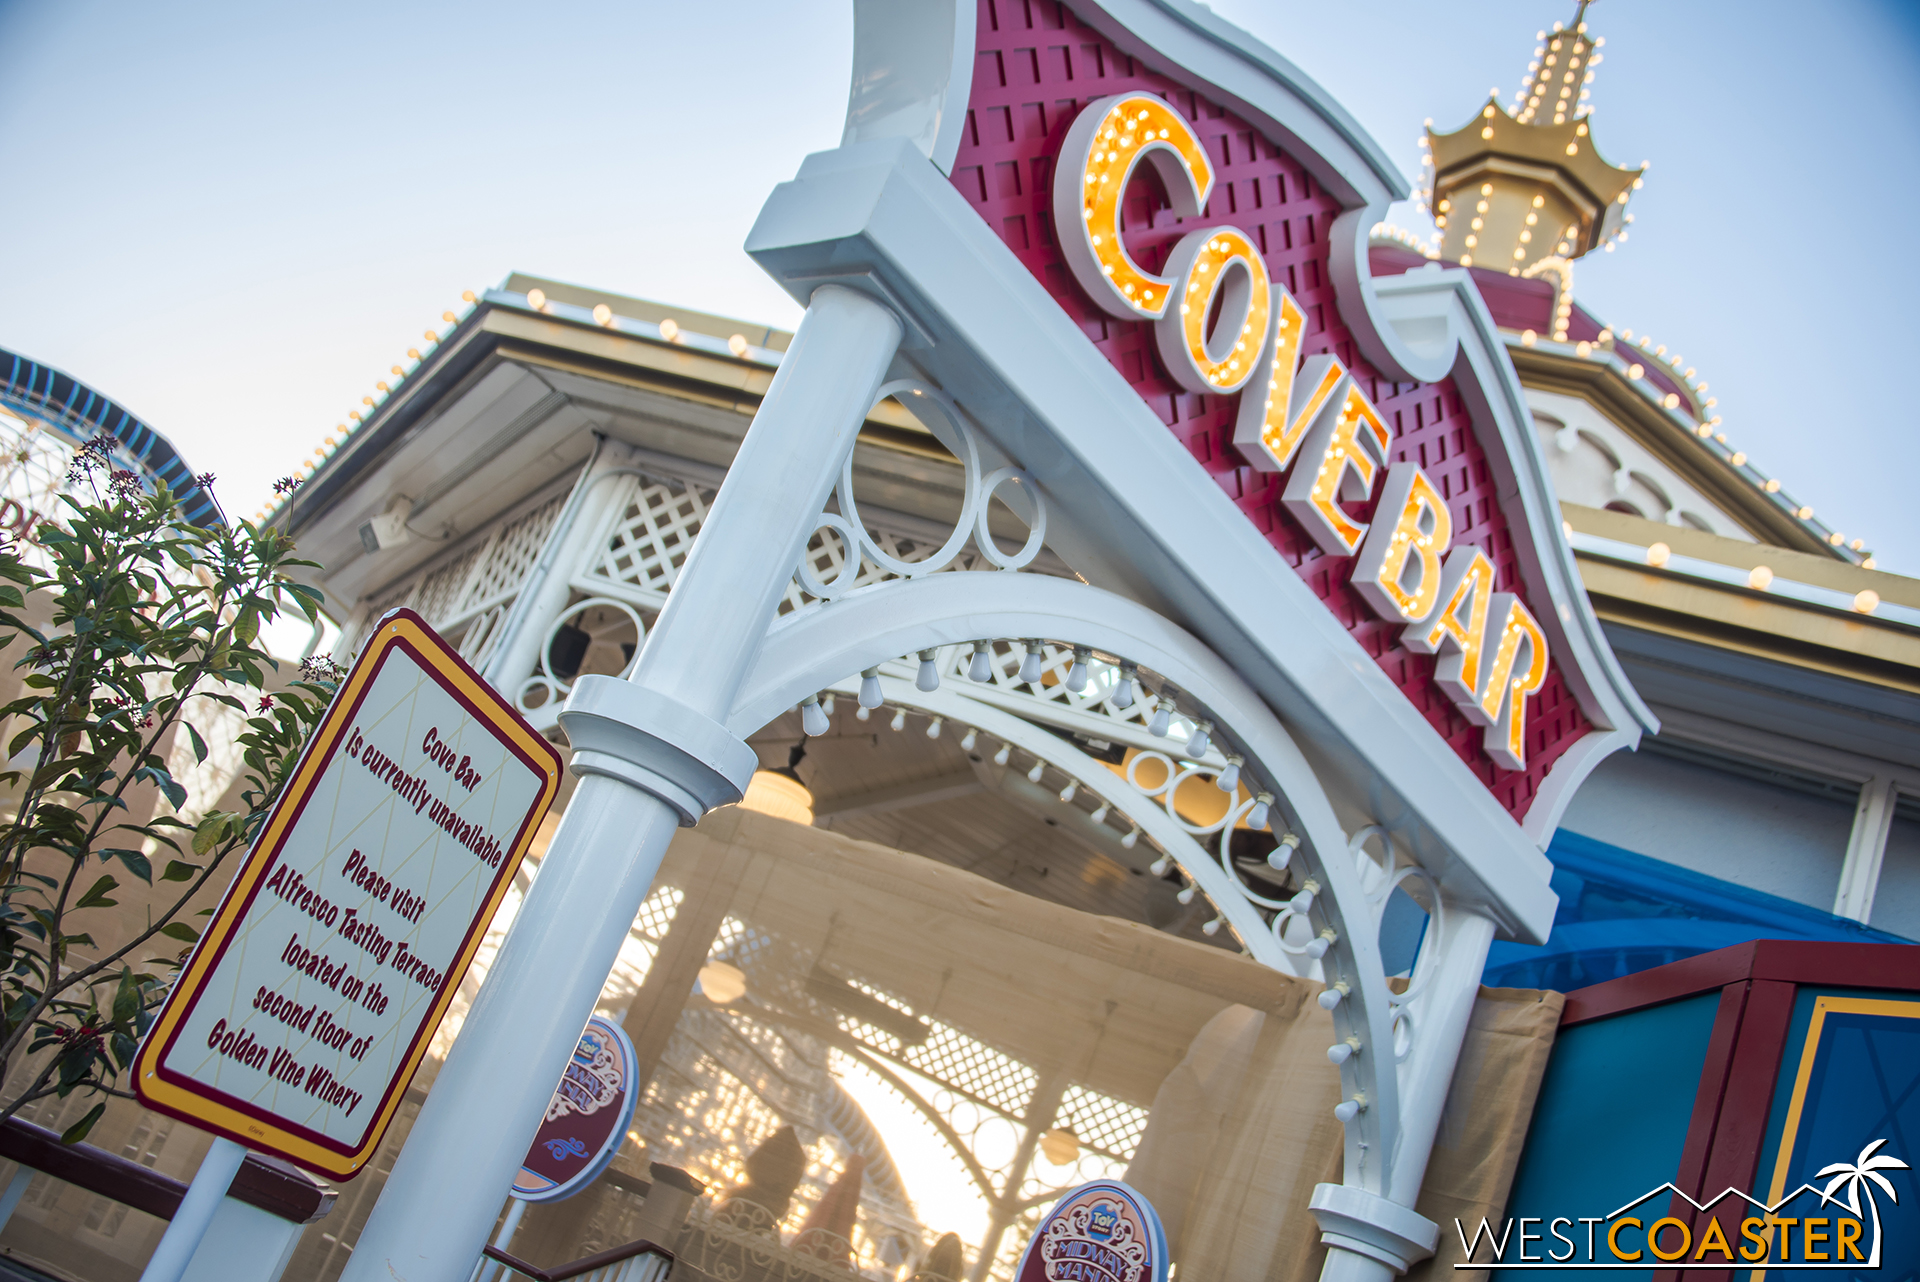 """Teleporting back to the """"main"""" entry into the future Pixar Pier area, here's Cove Bar again. Fear not, to any Disney Drinkers who are worried it is gone forever. It is due to reopen briefly in April, then close for a permanent rebrand. But it will return as an alcoholic establishment--just probably under a different name."""